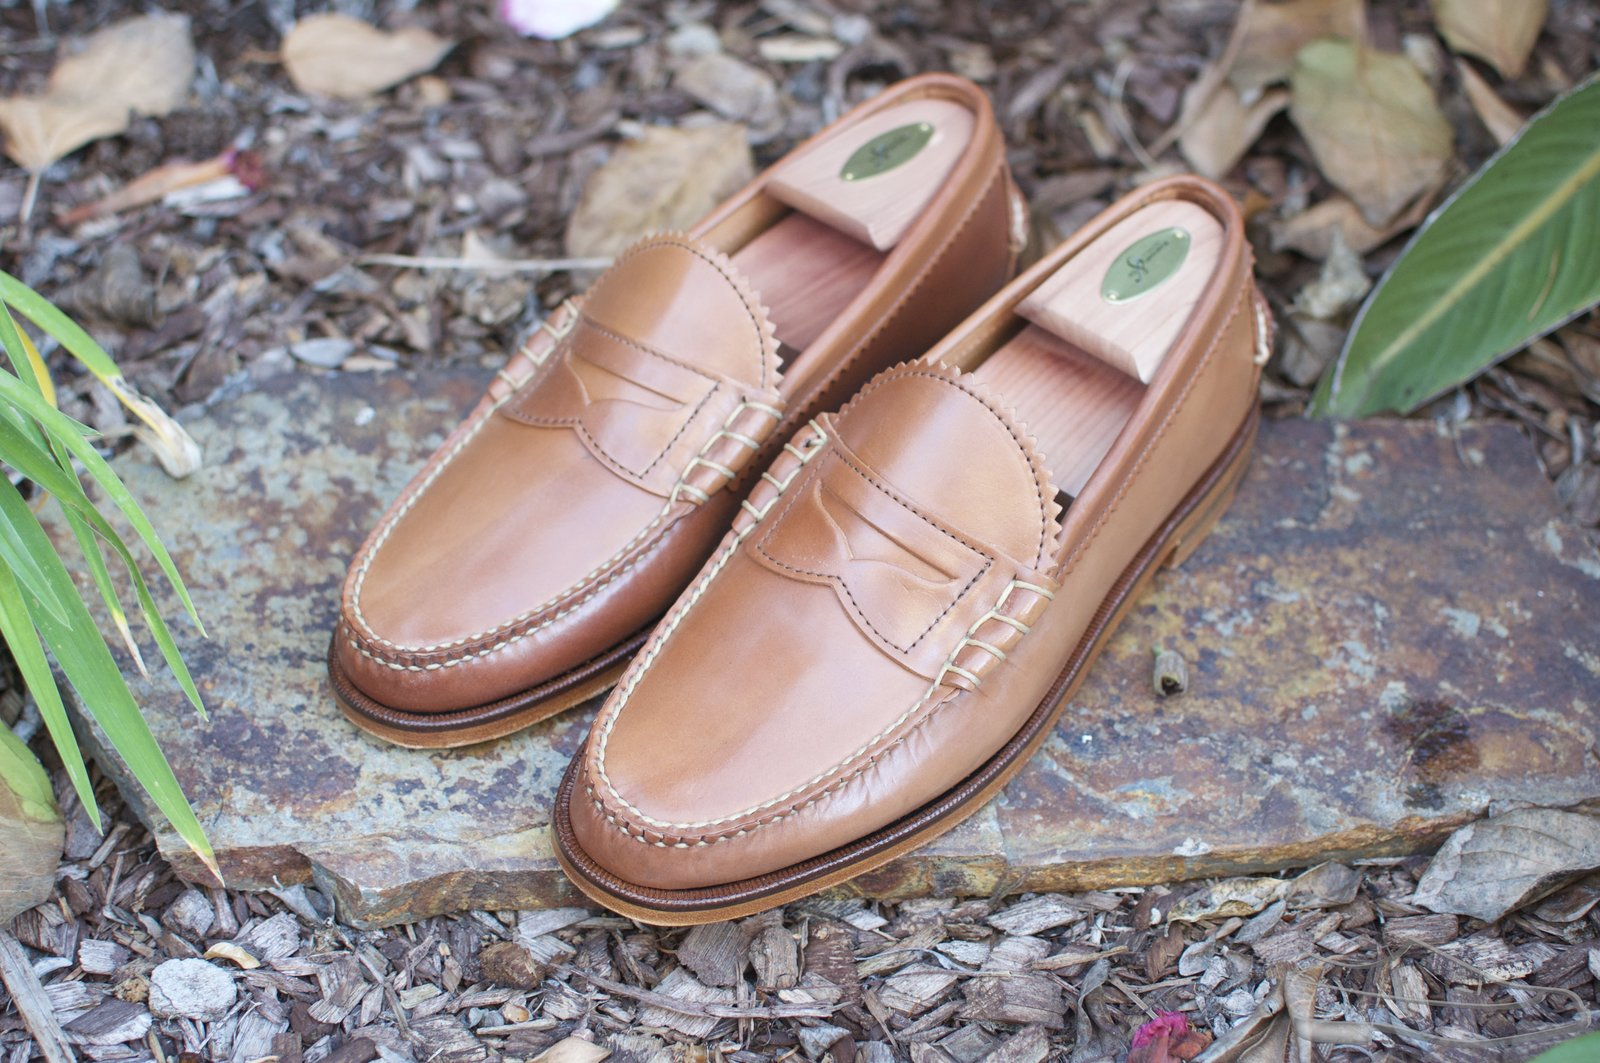 Rancourt Natural Shell Cordovan Beef-Roll Loafers - 2021-05-25 - 1.jpg